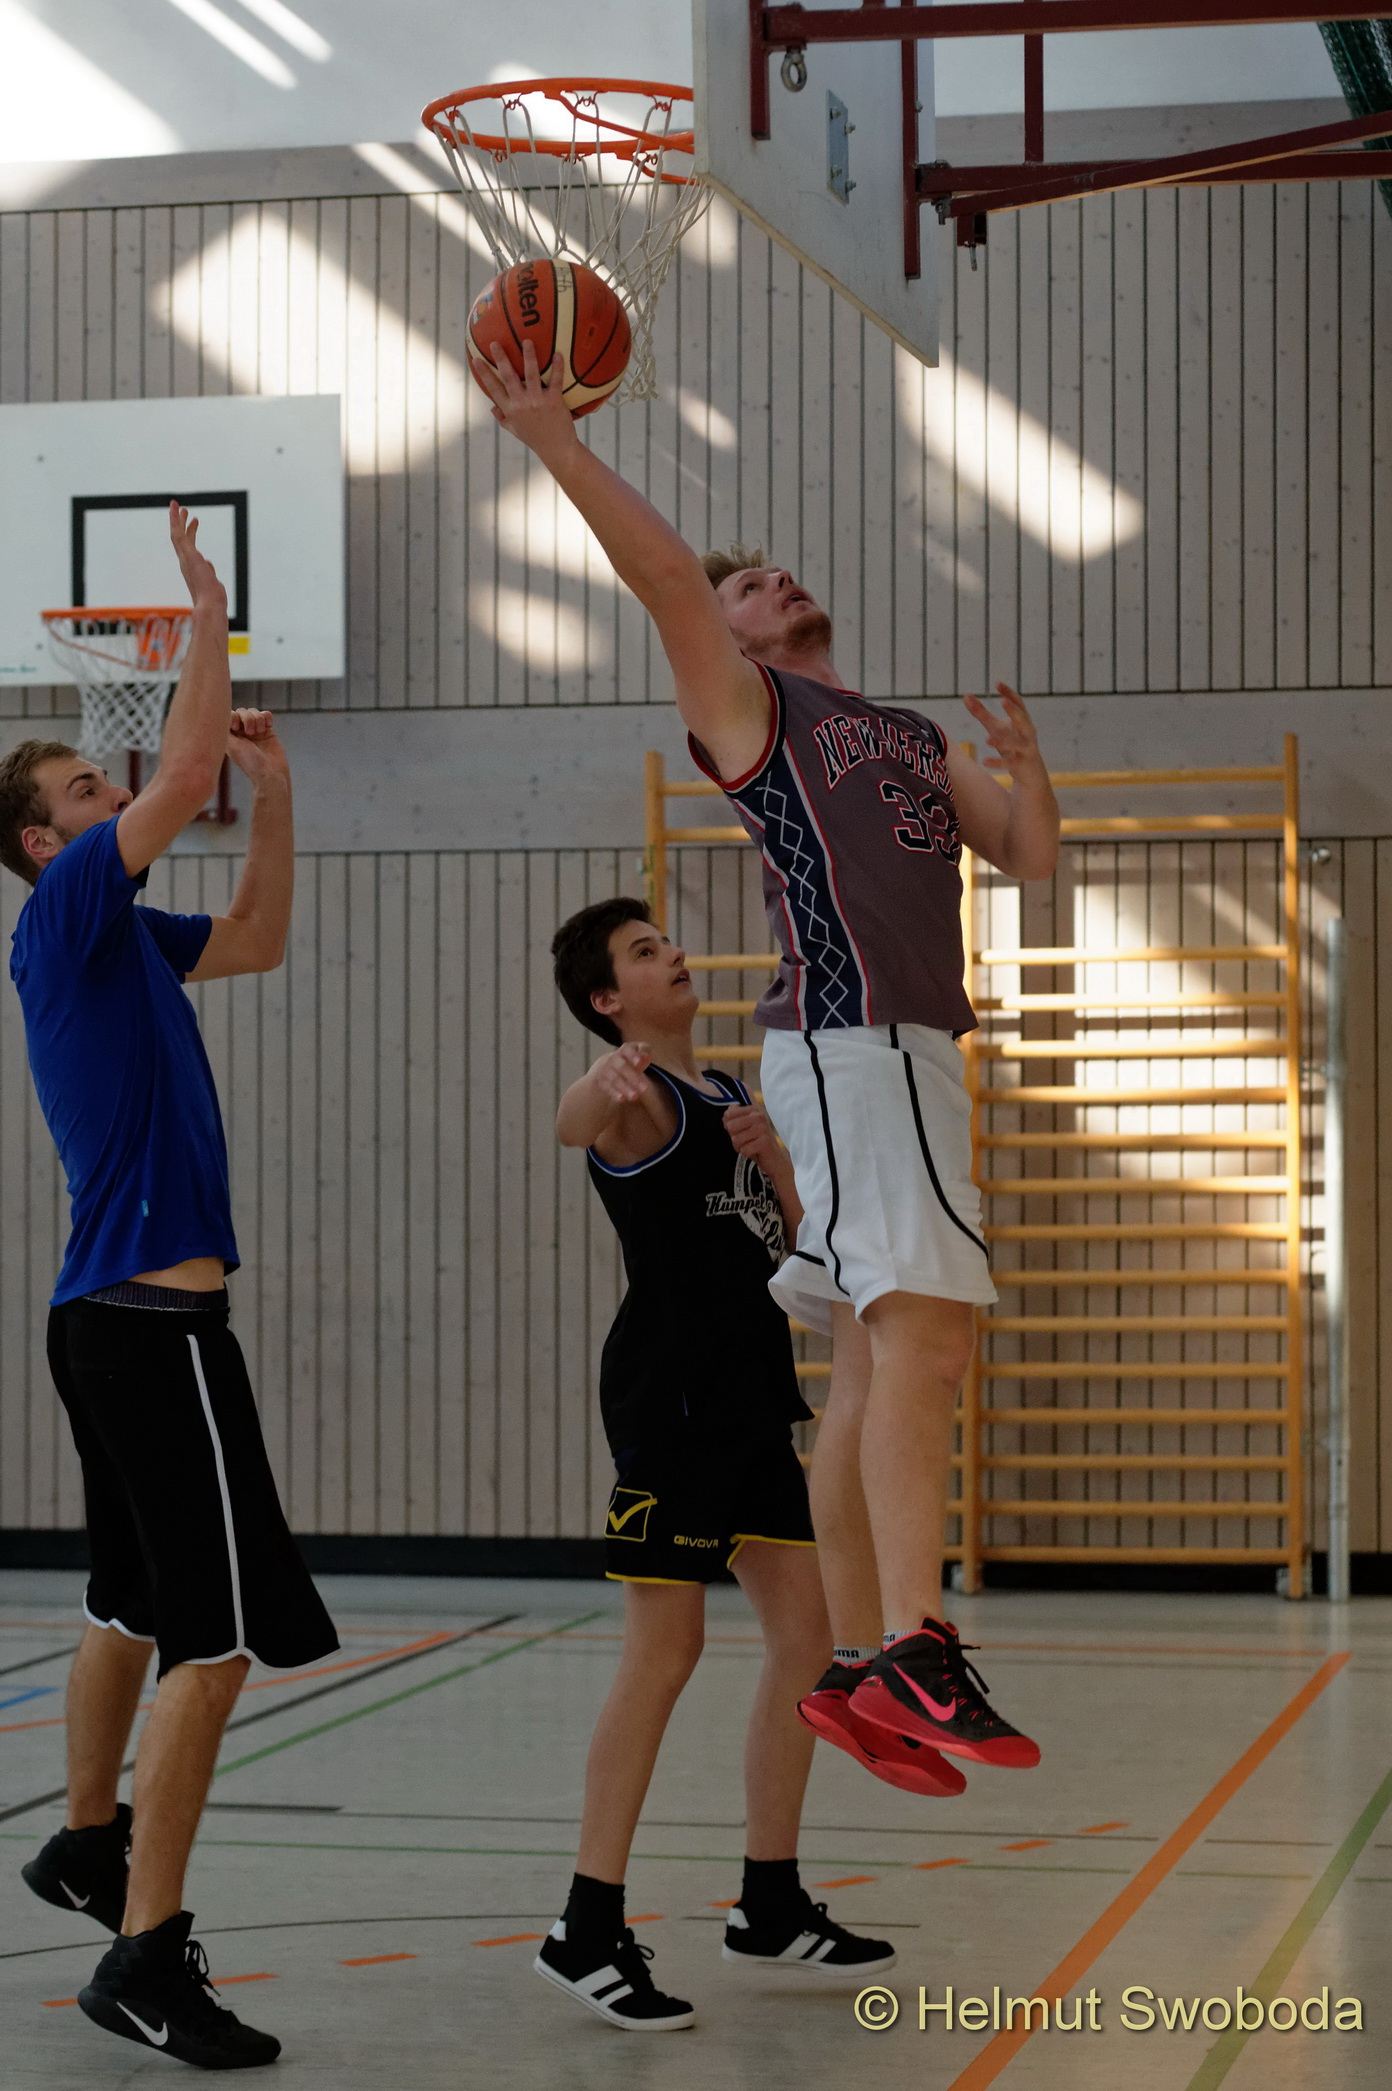 d170402-162507100-100-basketball_weilheim-mixed-turnier_33772900236_o